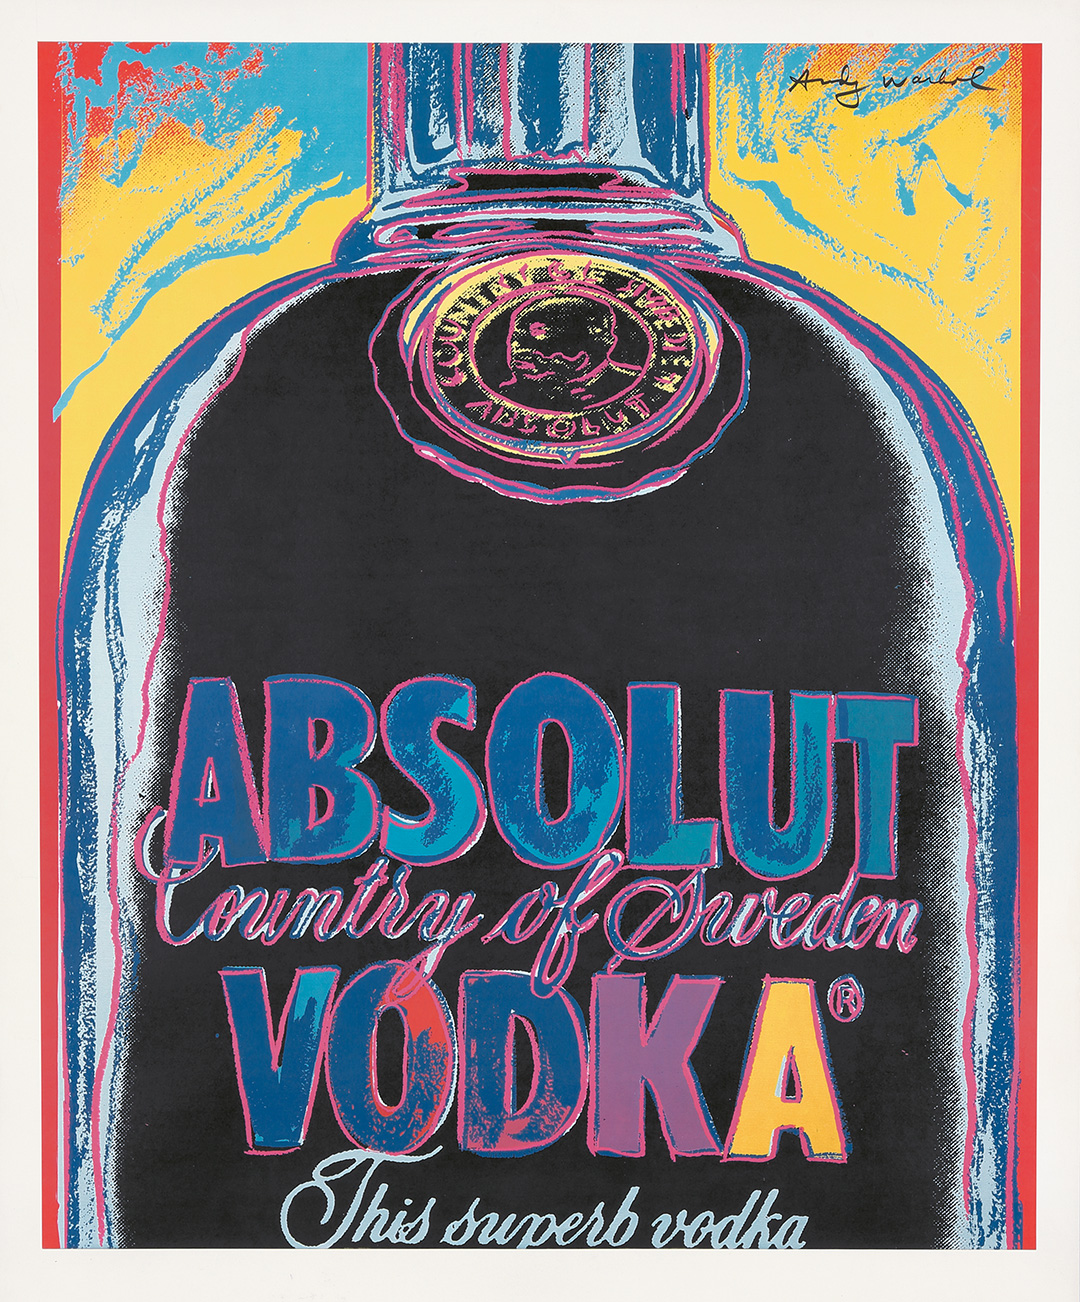 514. Absolut Vodka. 1985. ($4,080)